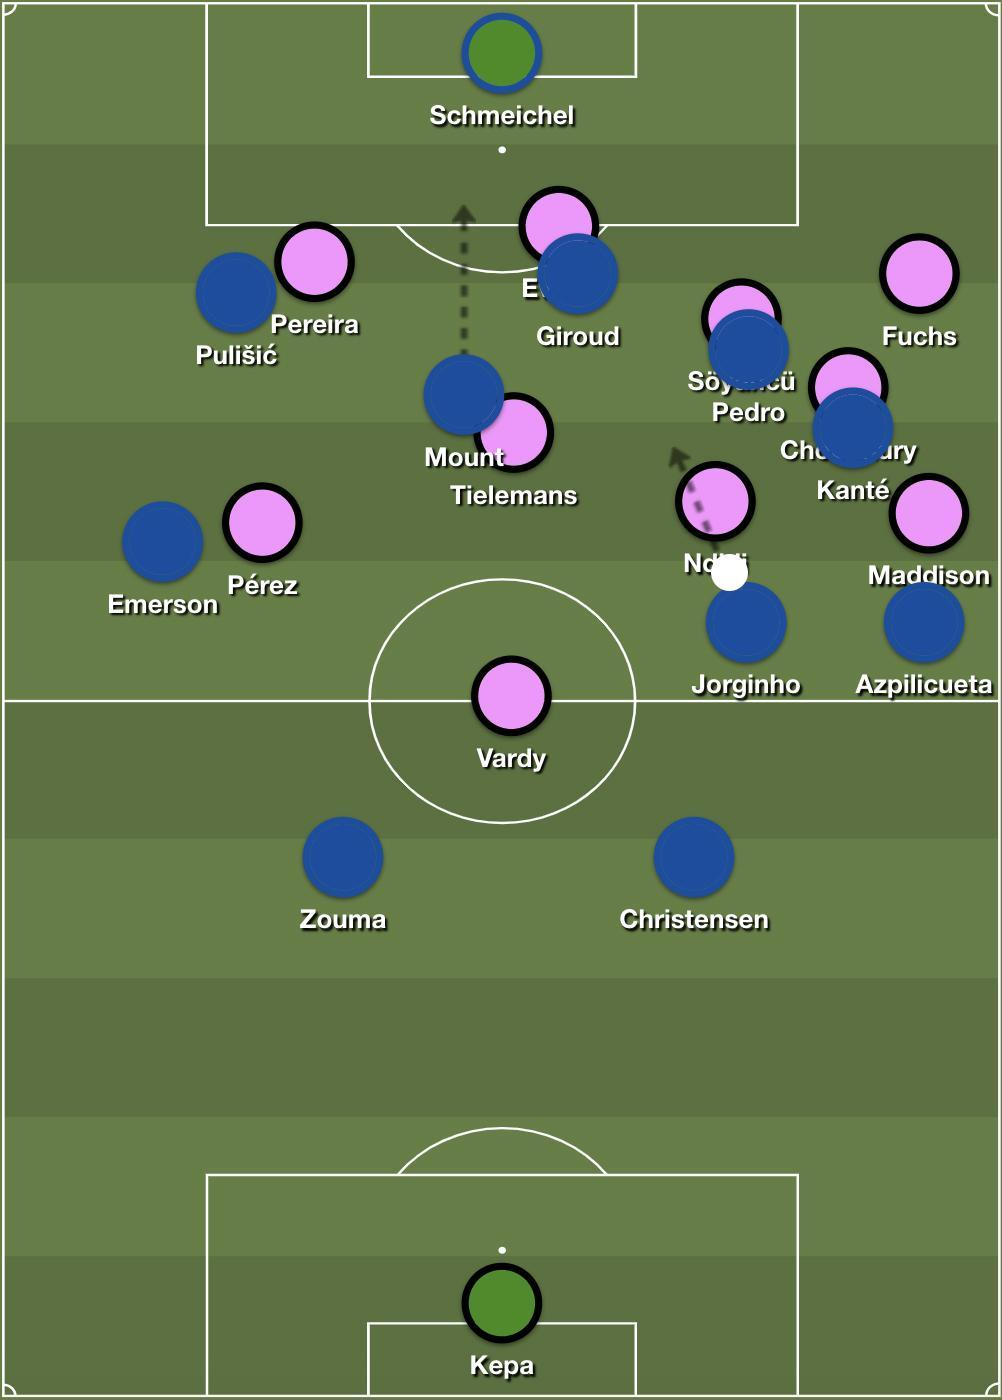 Chelsea's attacking situation for the second chance, drawing out pressure to exploit the underloaded central area